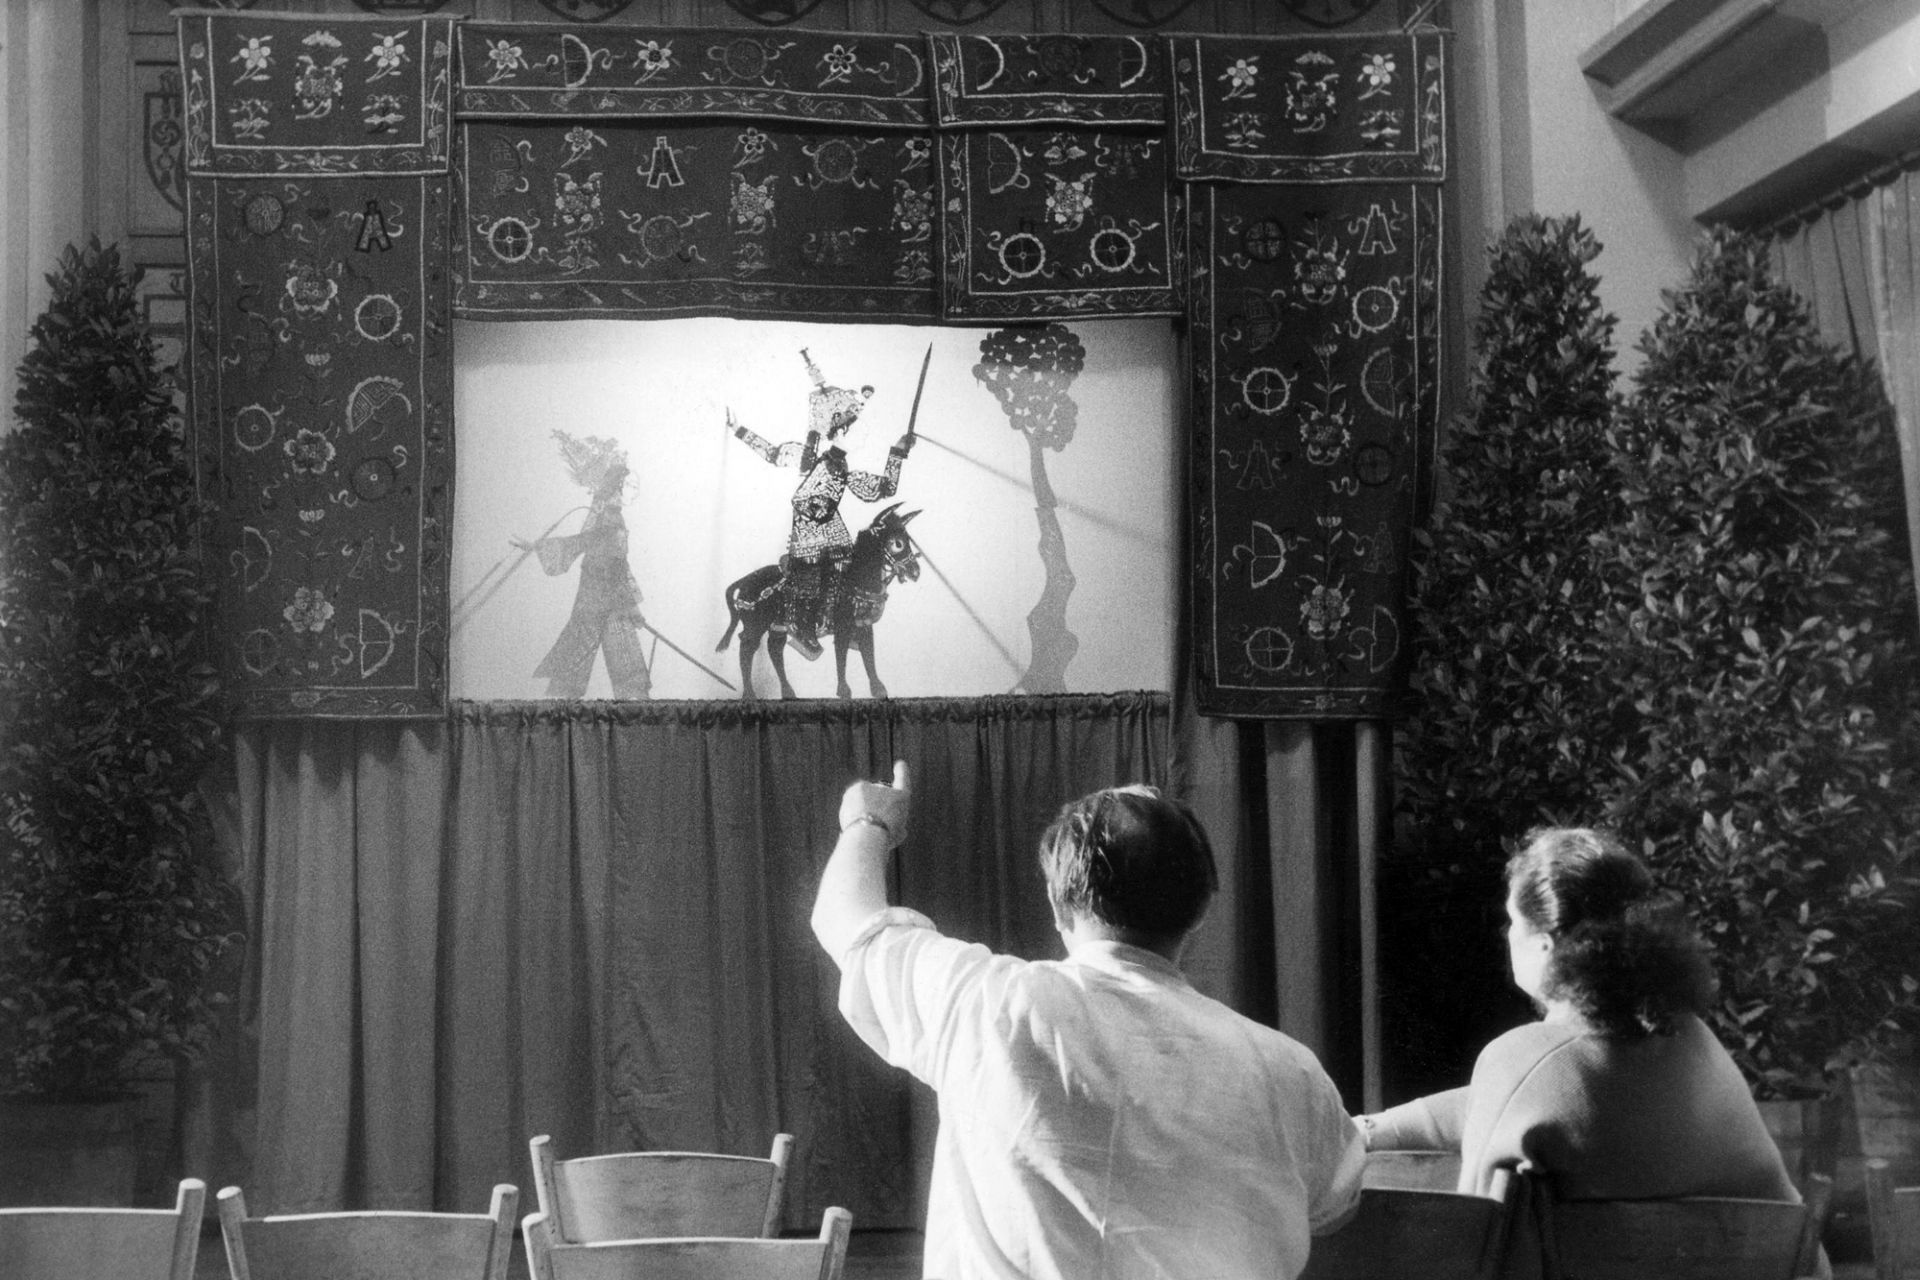 Shadow puppet theatre performance at the German Leather Museum, 1954